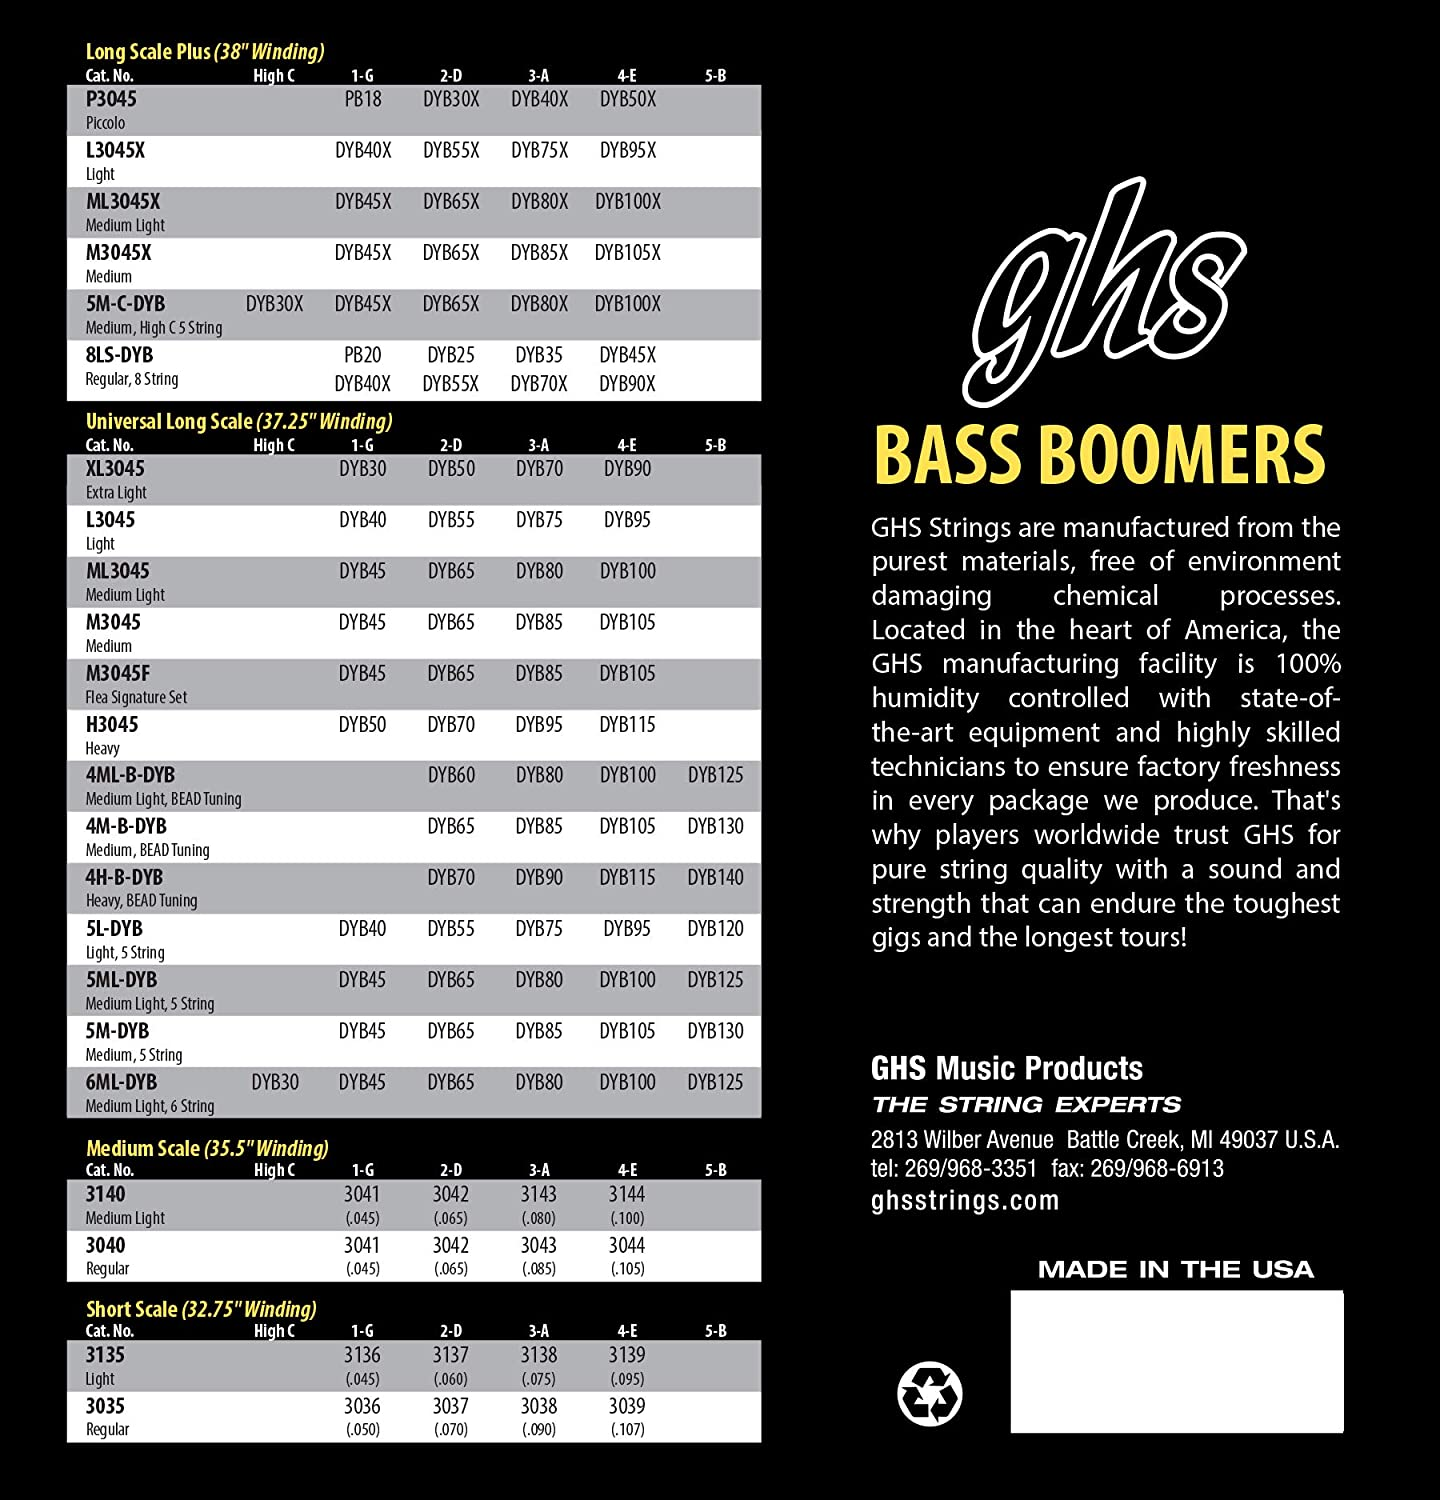 Long Scale Medium GHS Strings 5M-DYB 5-String Bass Boomers Nickel-Plated Electric Bass Strings .045-.130